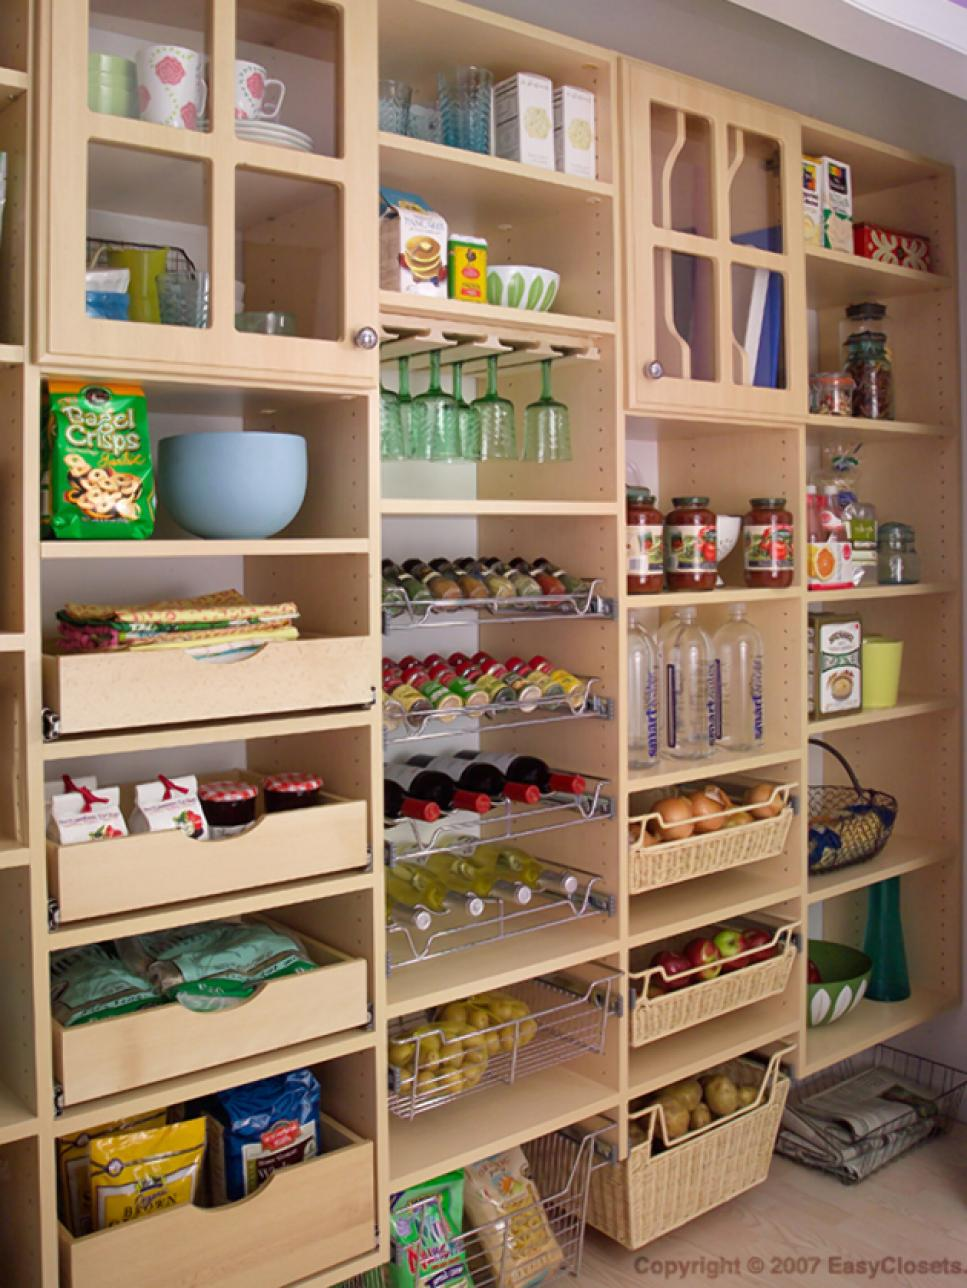 Kitchen Pantry Organization Ideas Fair Organization And Design Ideas For Storage In The Kitchen Pantry  Diy 2017